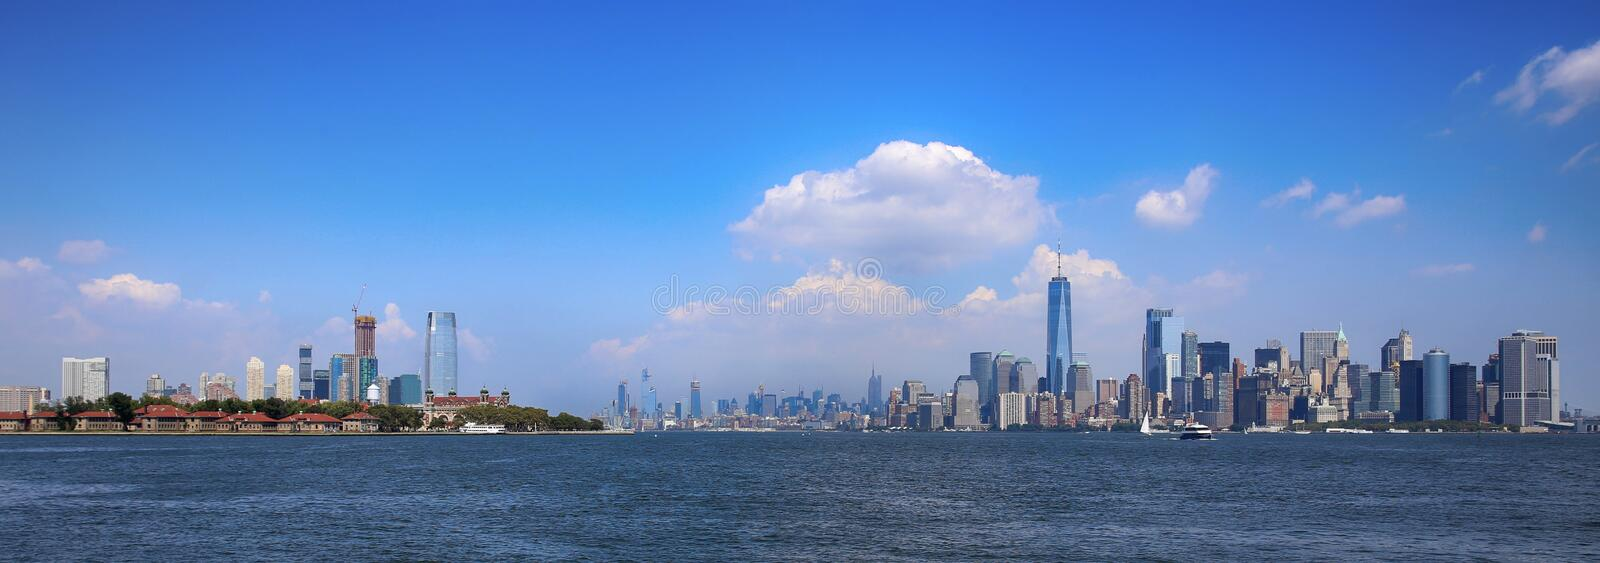 New Jersey et New York City images stock